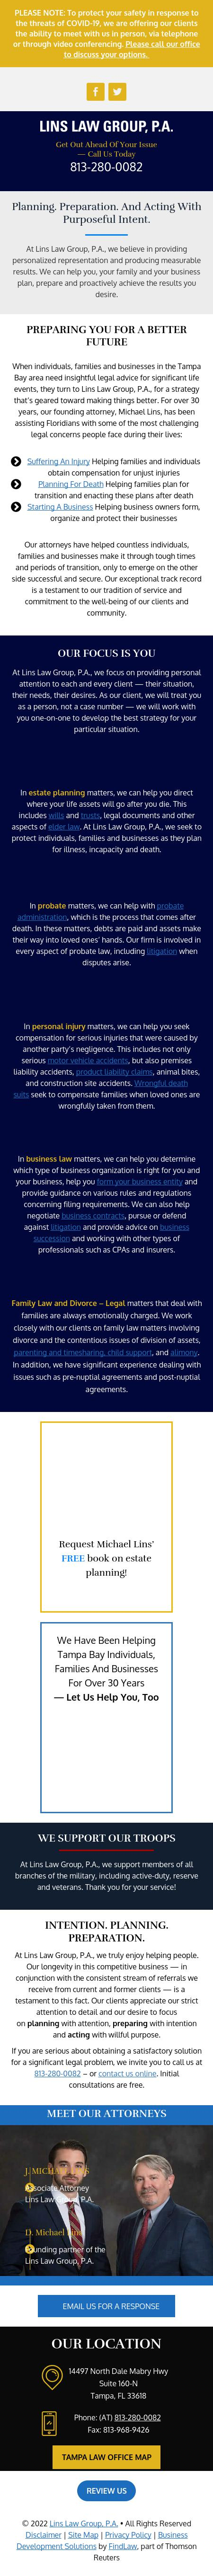 Lins Law Group, P.A. - Tampa FL Lawyers